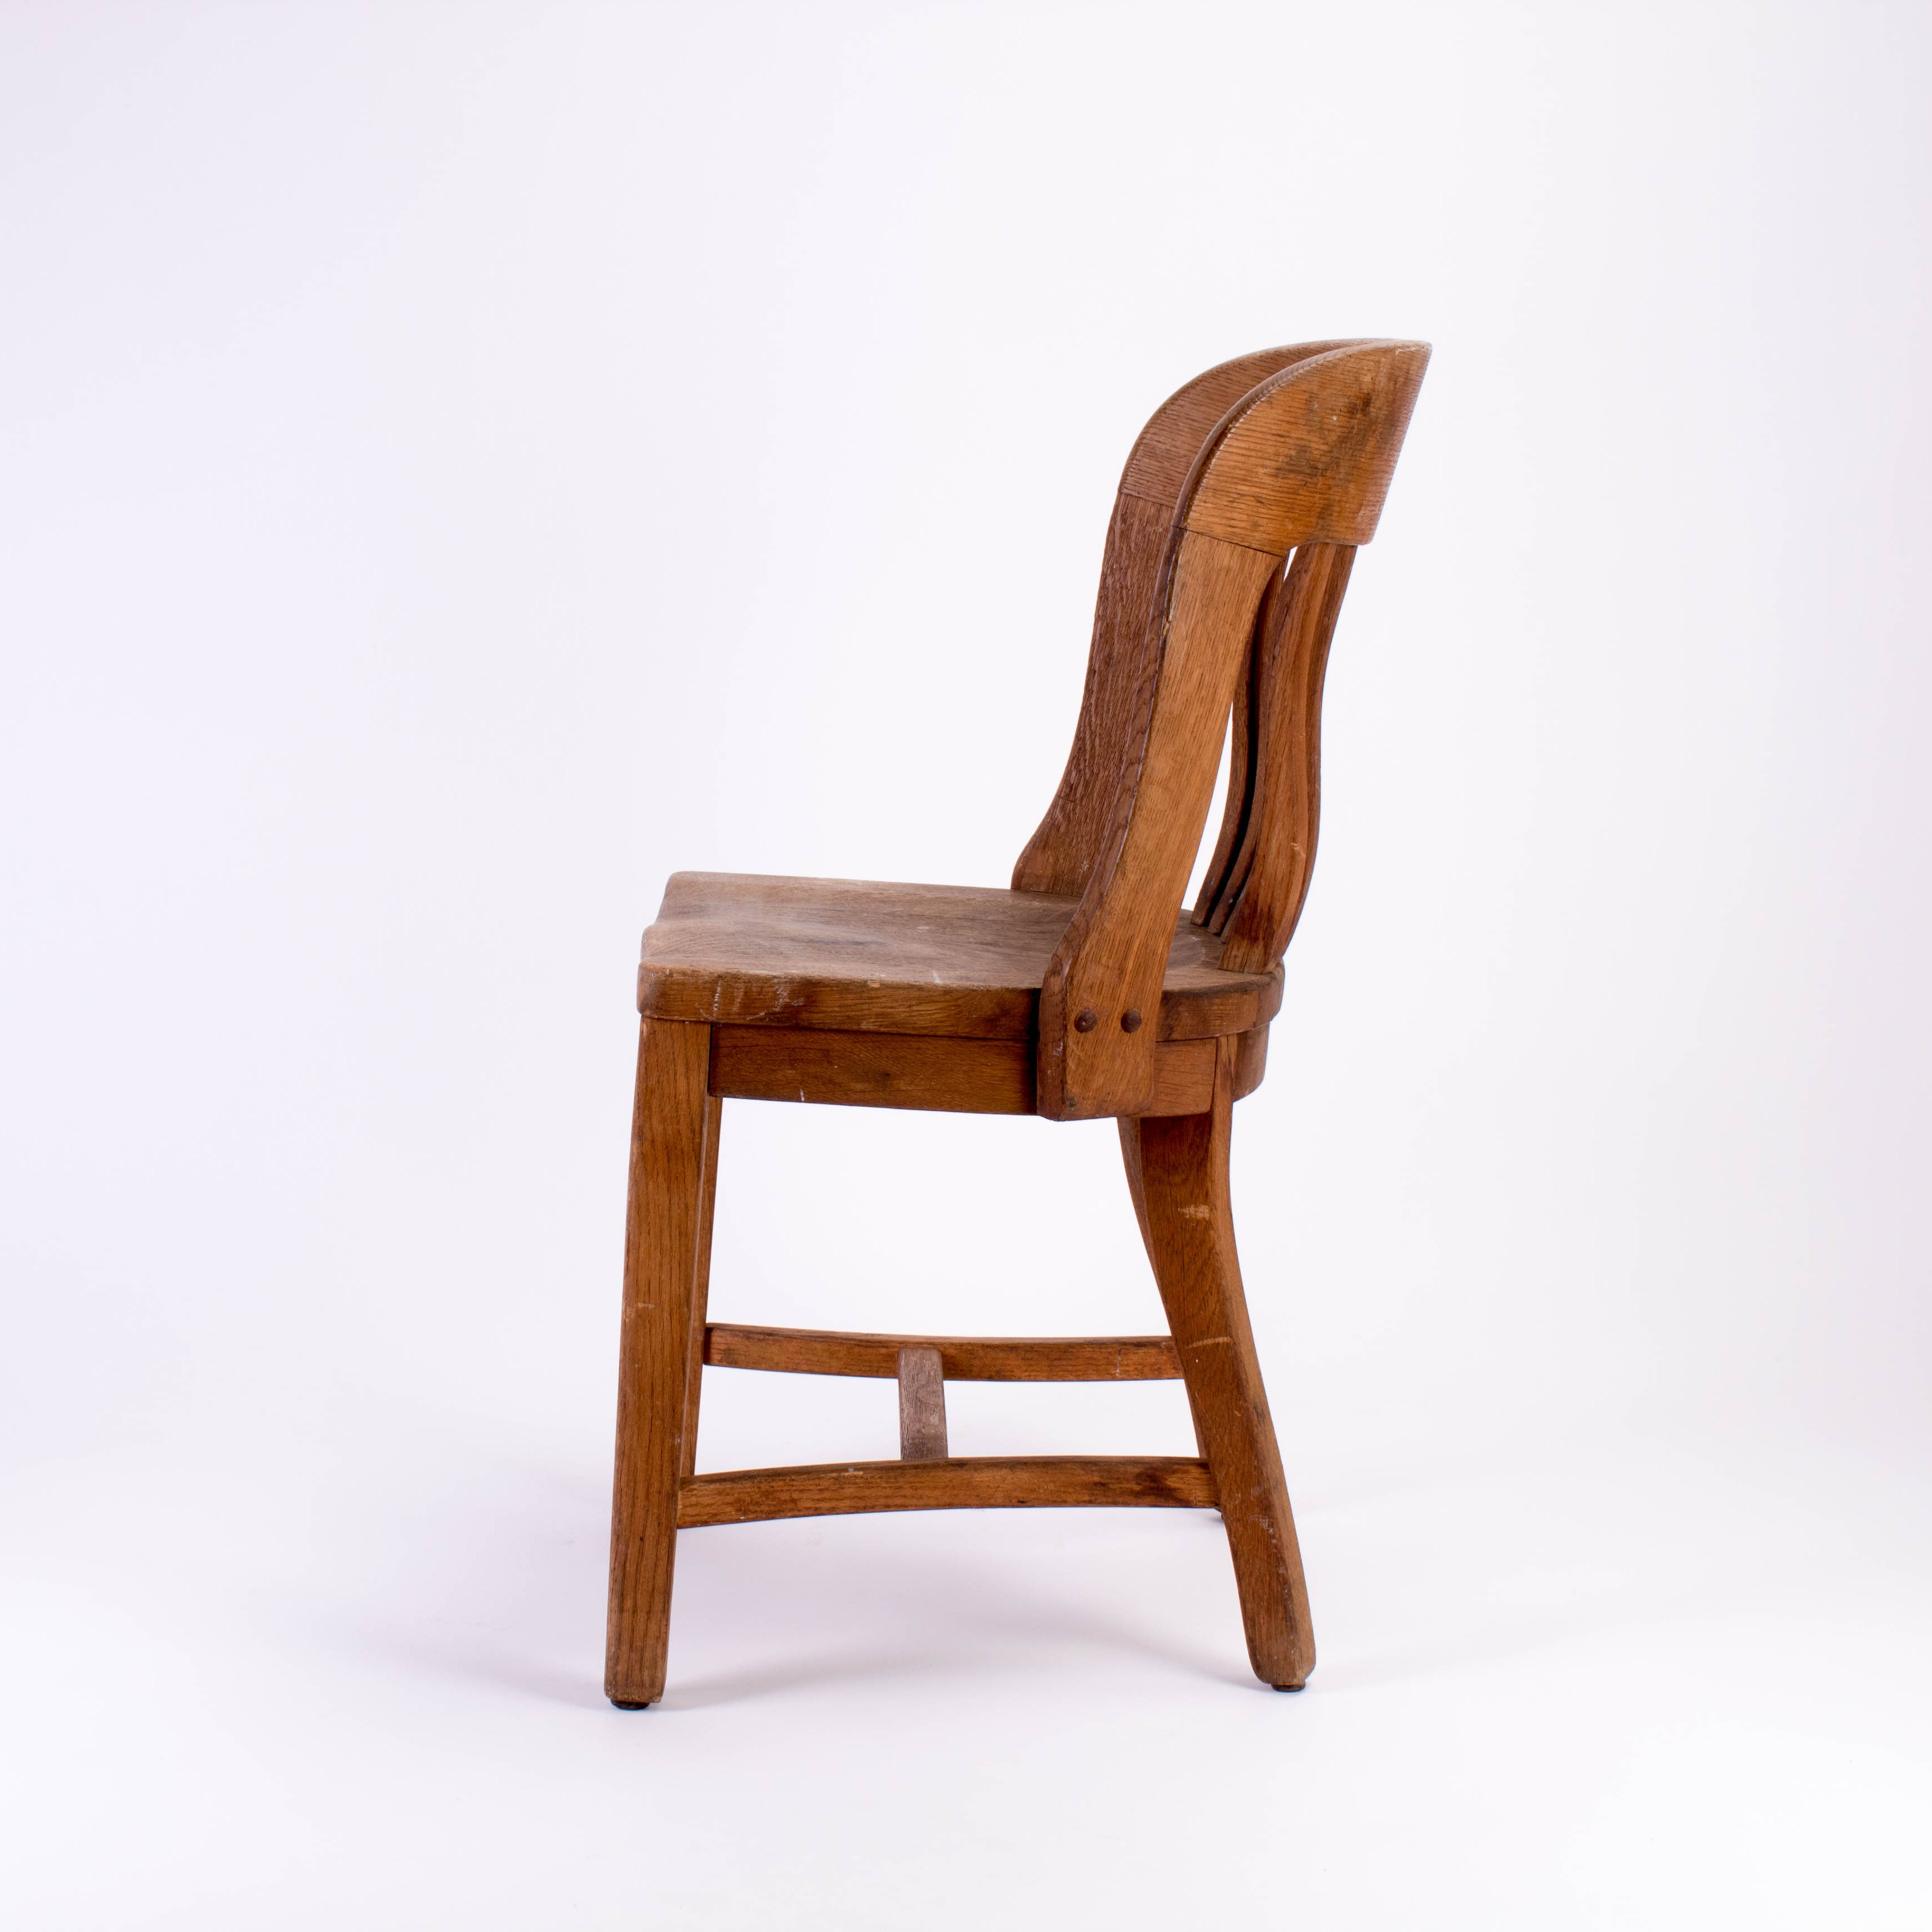 wooden library chair rustic rocking chairs wood for sale at 1stdibs